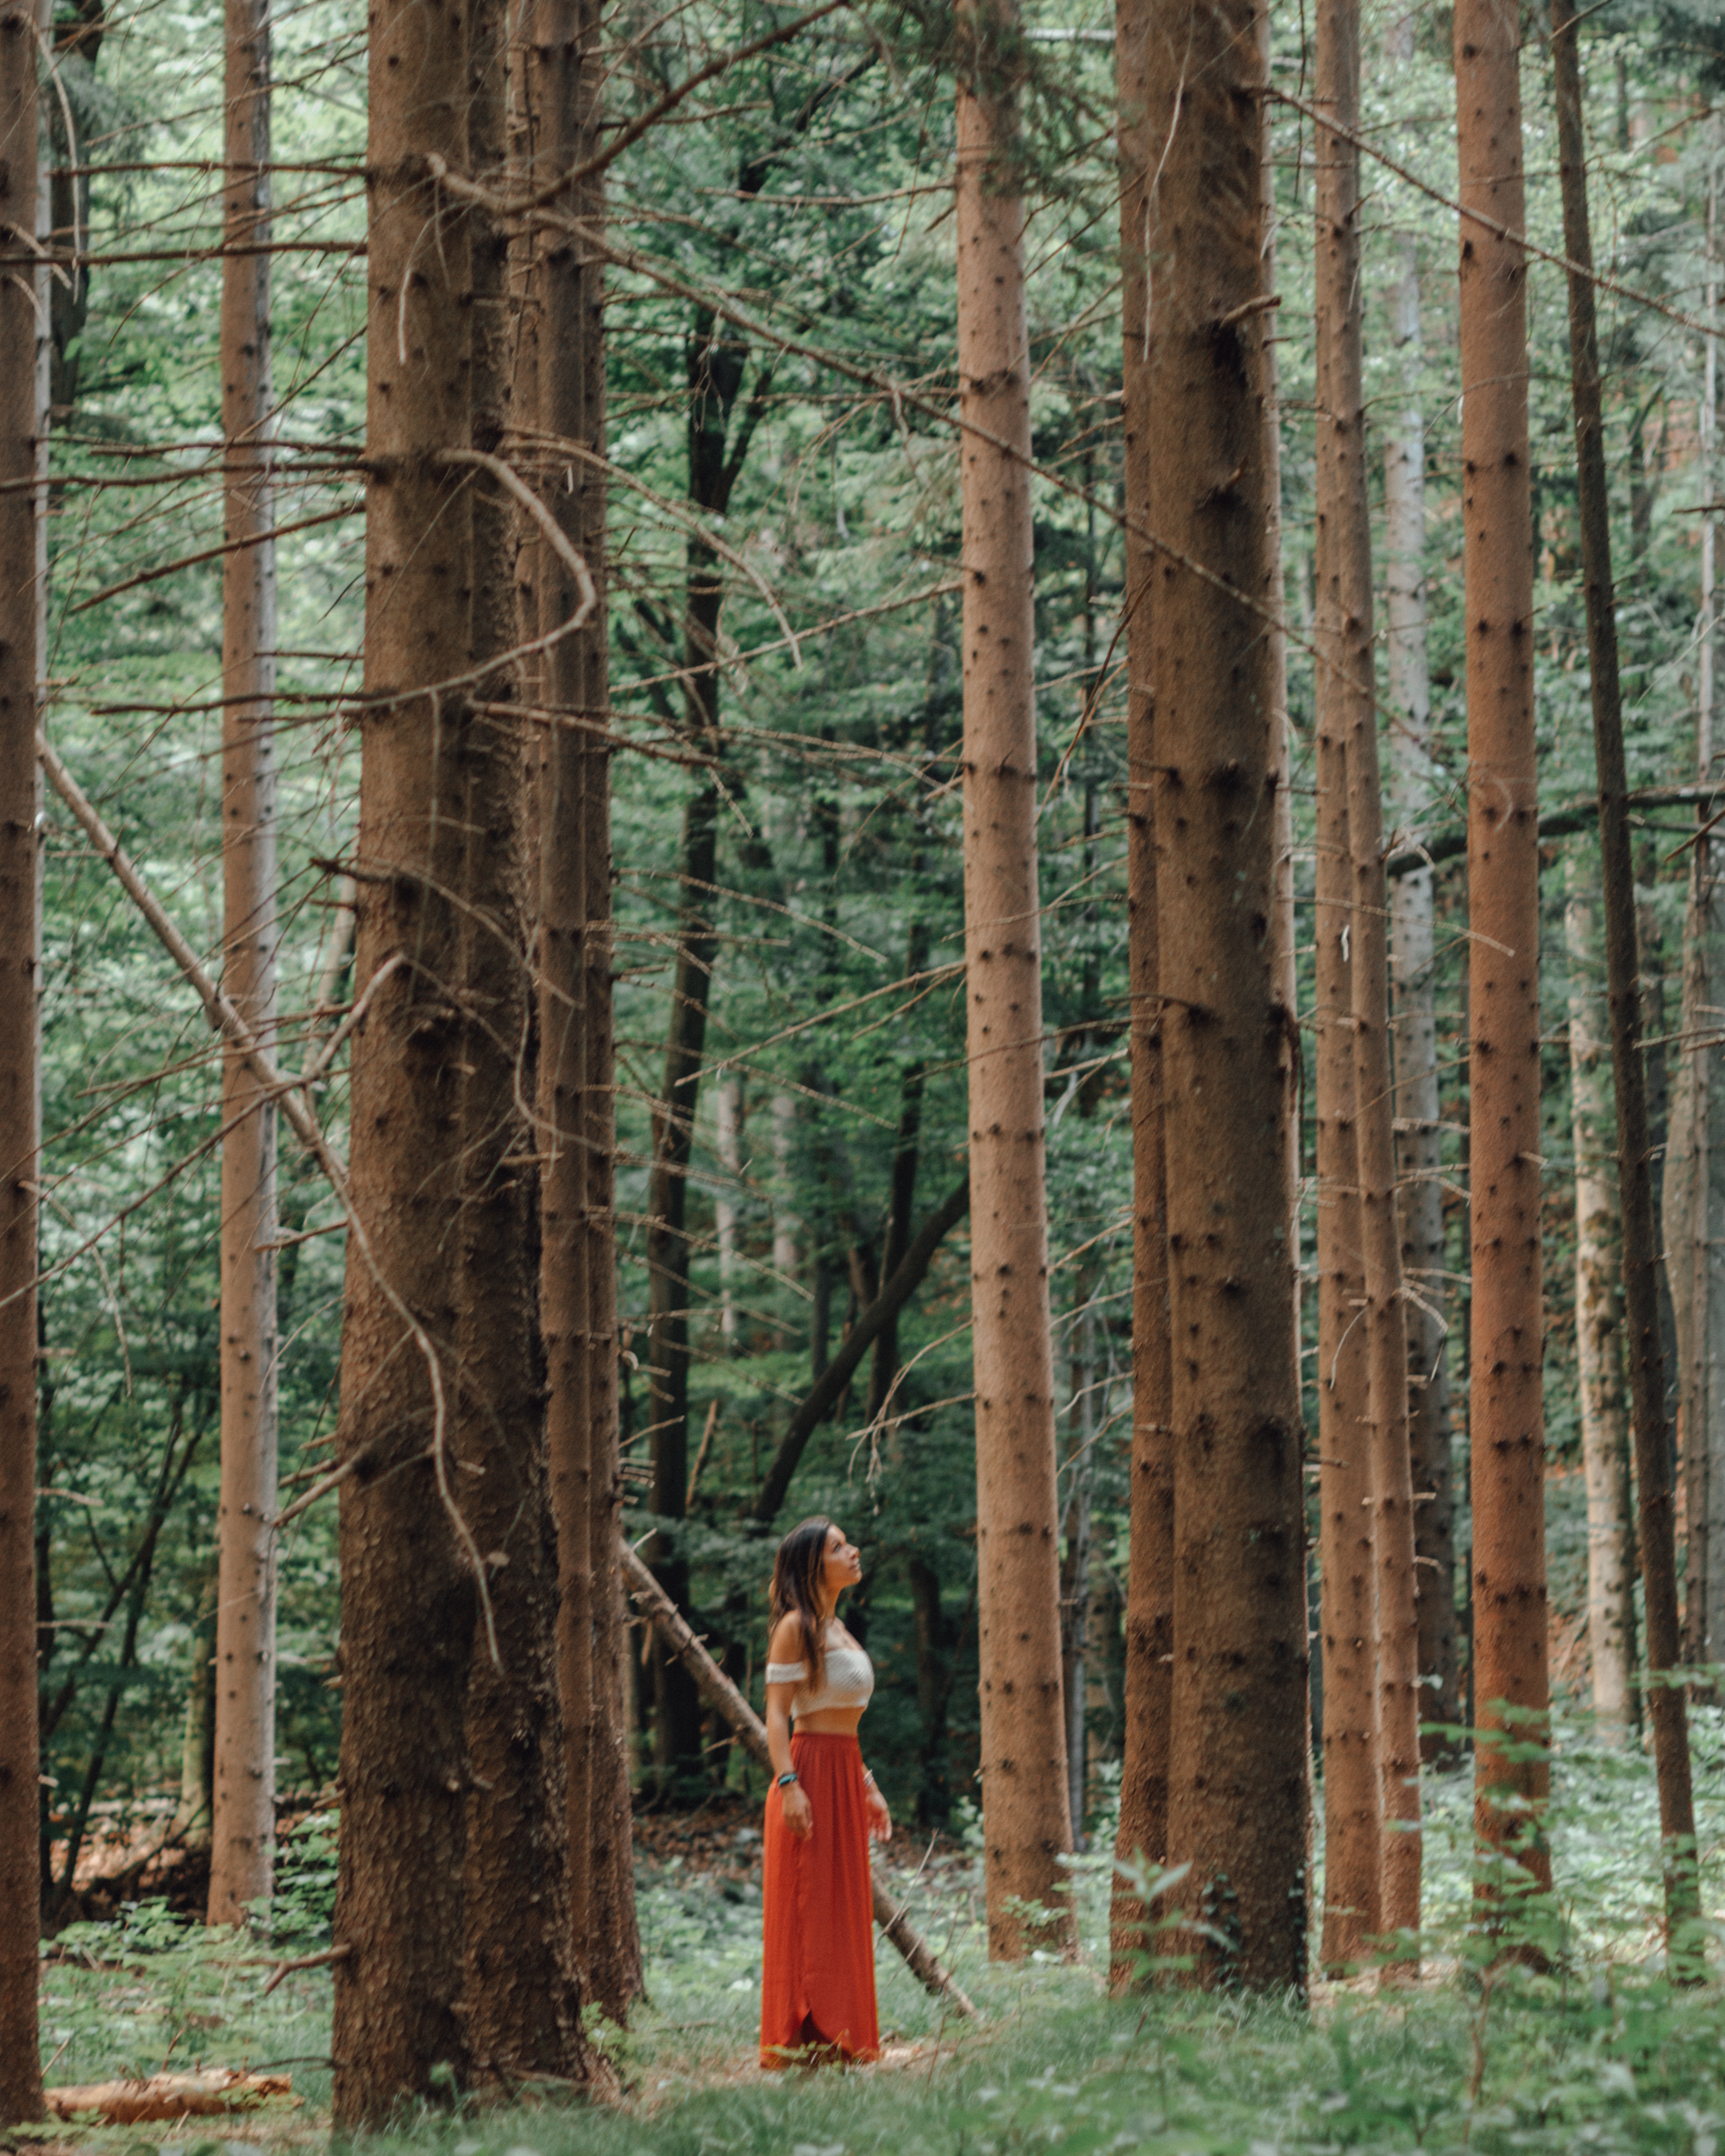 nature forest trees girl travel slovenia lake bled best places interrail budget